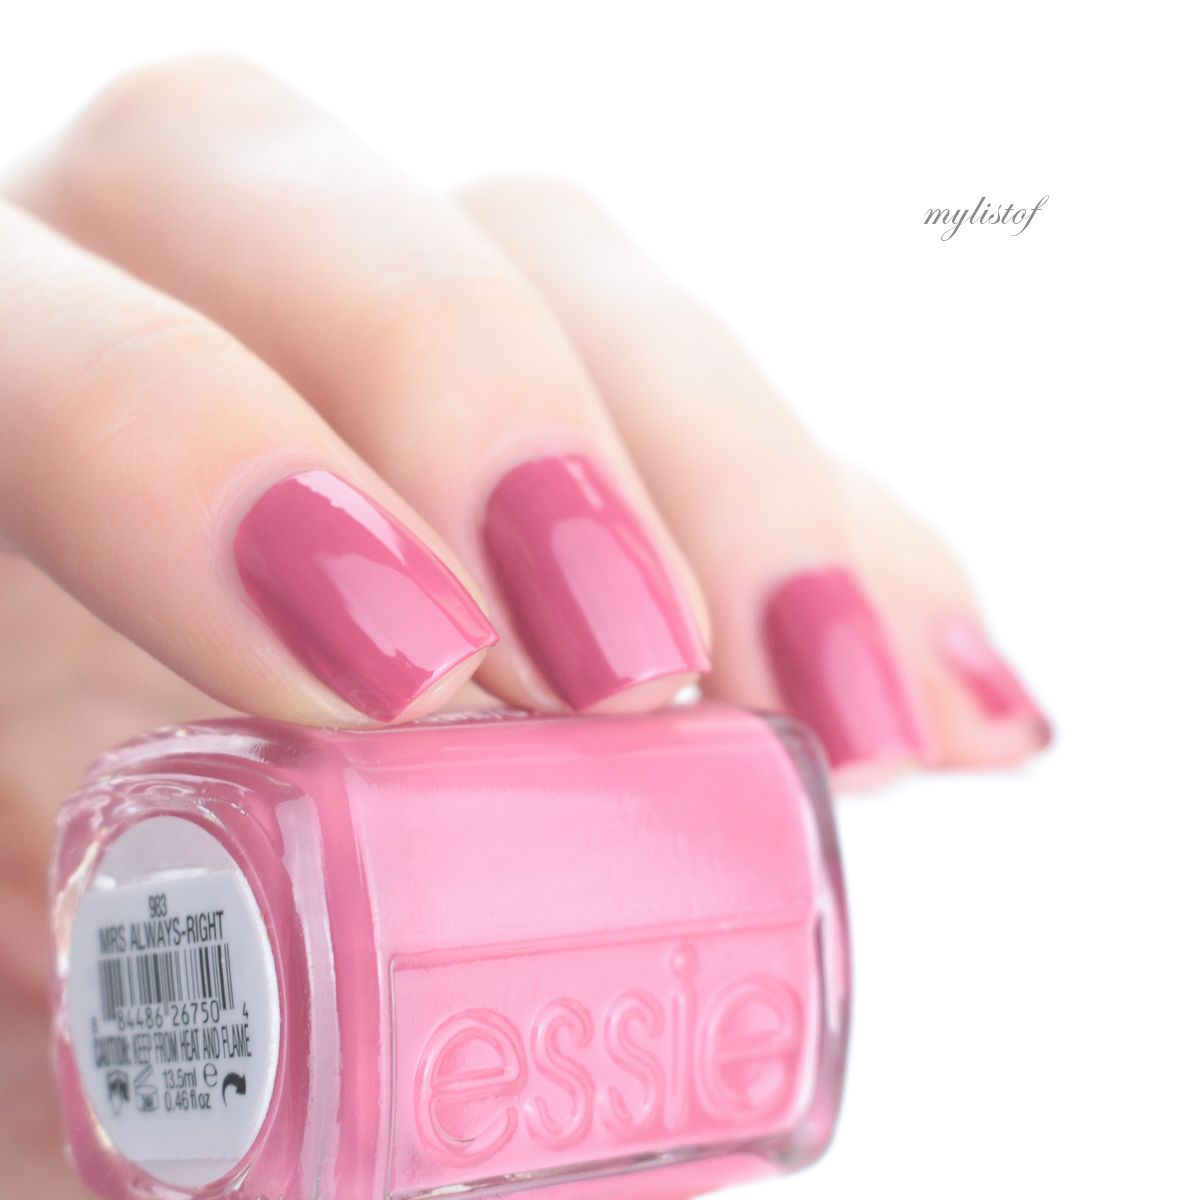 Essie, Nagellack, Swatch, Review, Pink, apricot, sheer, Creme, Schimmer, mint, flieder, grau, Bridal 2016, Mrs Always-Right, Passport To Happiness, Groom Service, Coming Together, Steal His Name, Between The Seats, Wedding, 2016, Collection, LE, Swatches